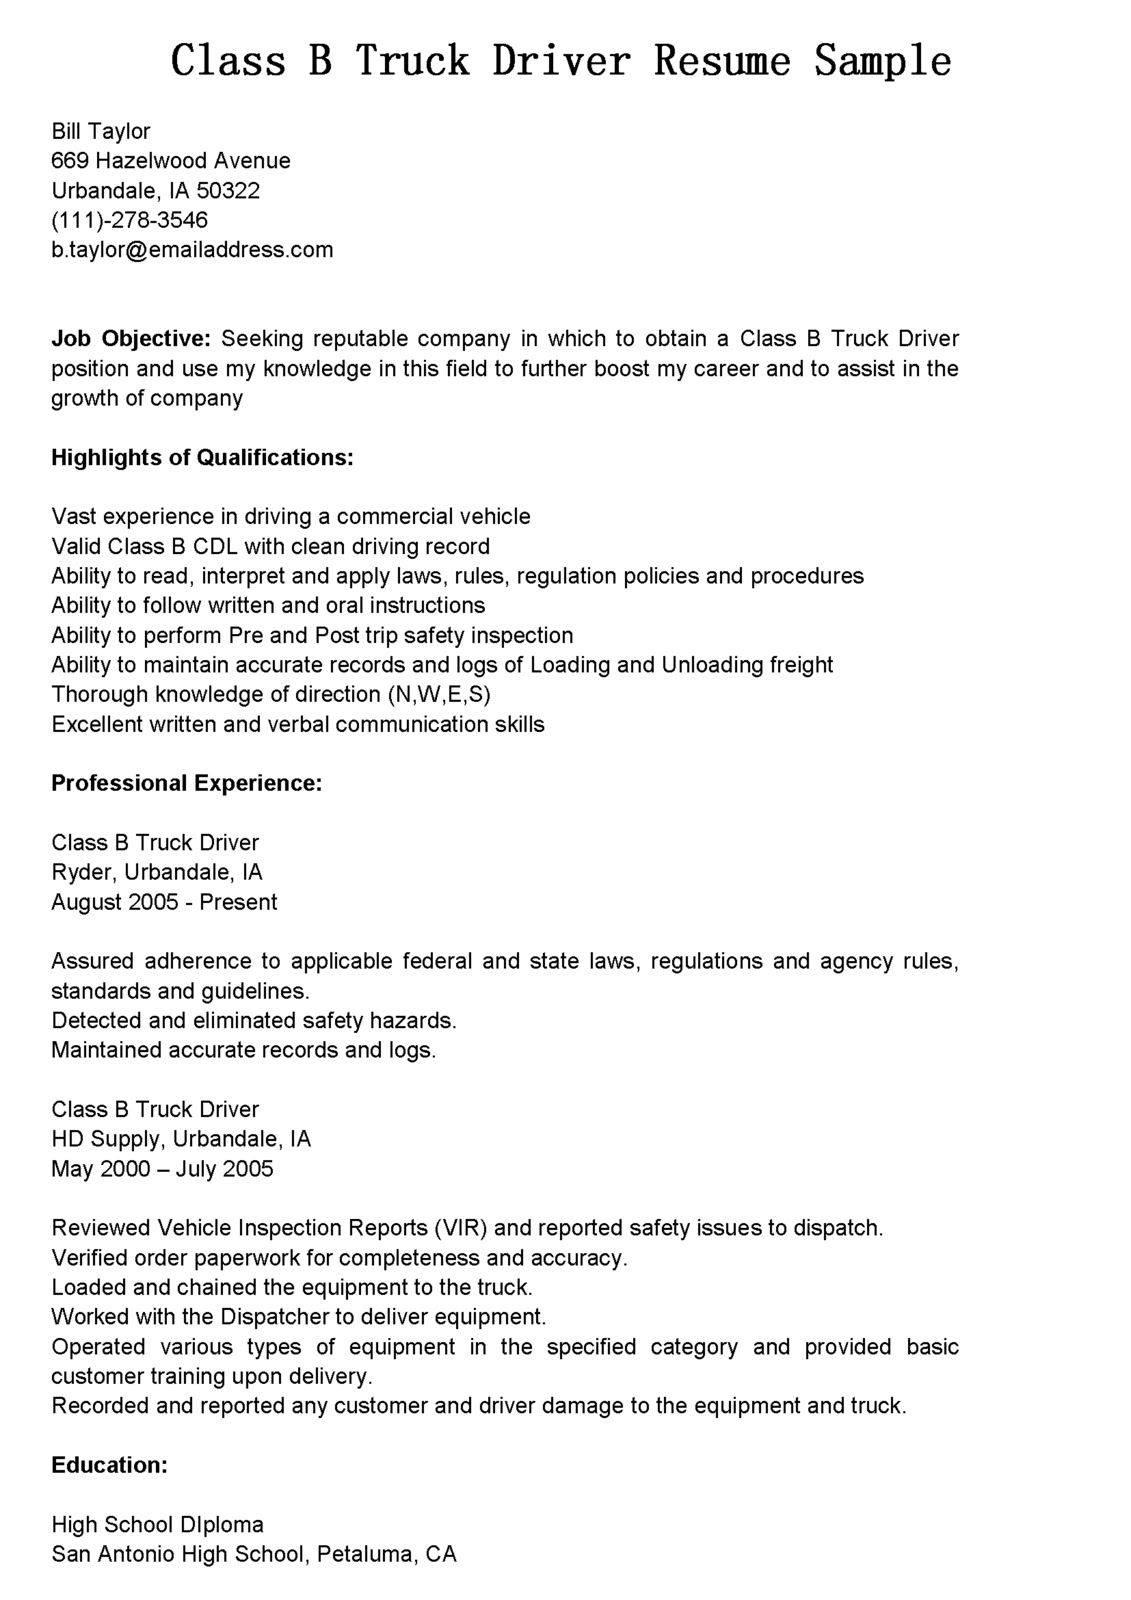 A Good Resume Example Truck Drivers Resume Sample  Httptopresumetruckdrivers